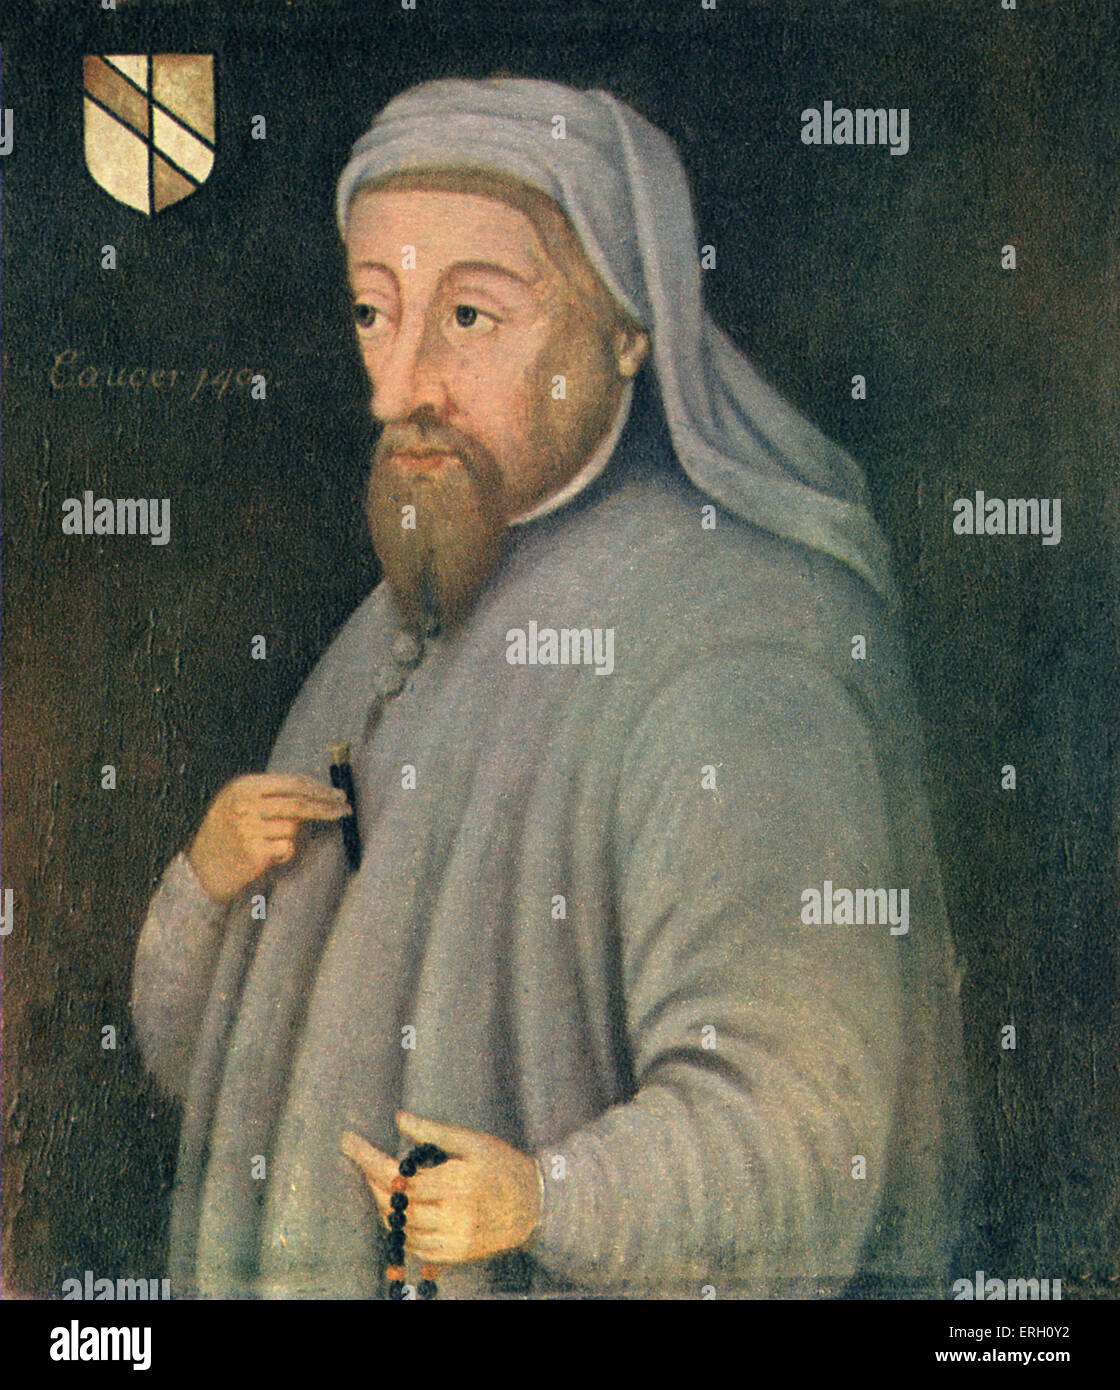 Geoffrey Chaucer portrait. English author, poet and philosopher: c 1343 – October 25, 1400.( Bodleian Library.) - Stock Image